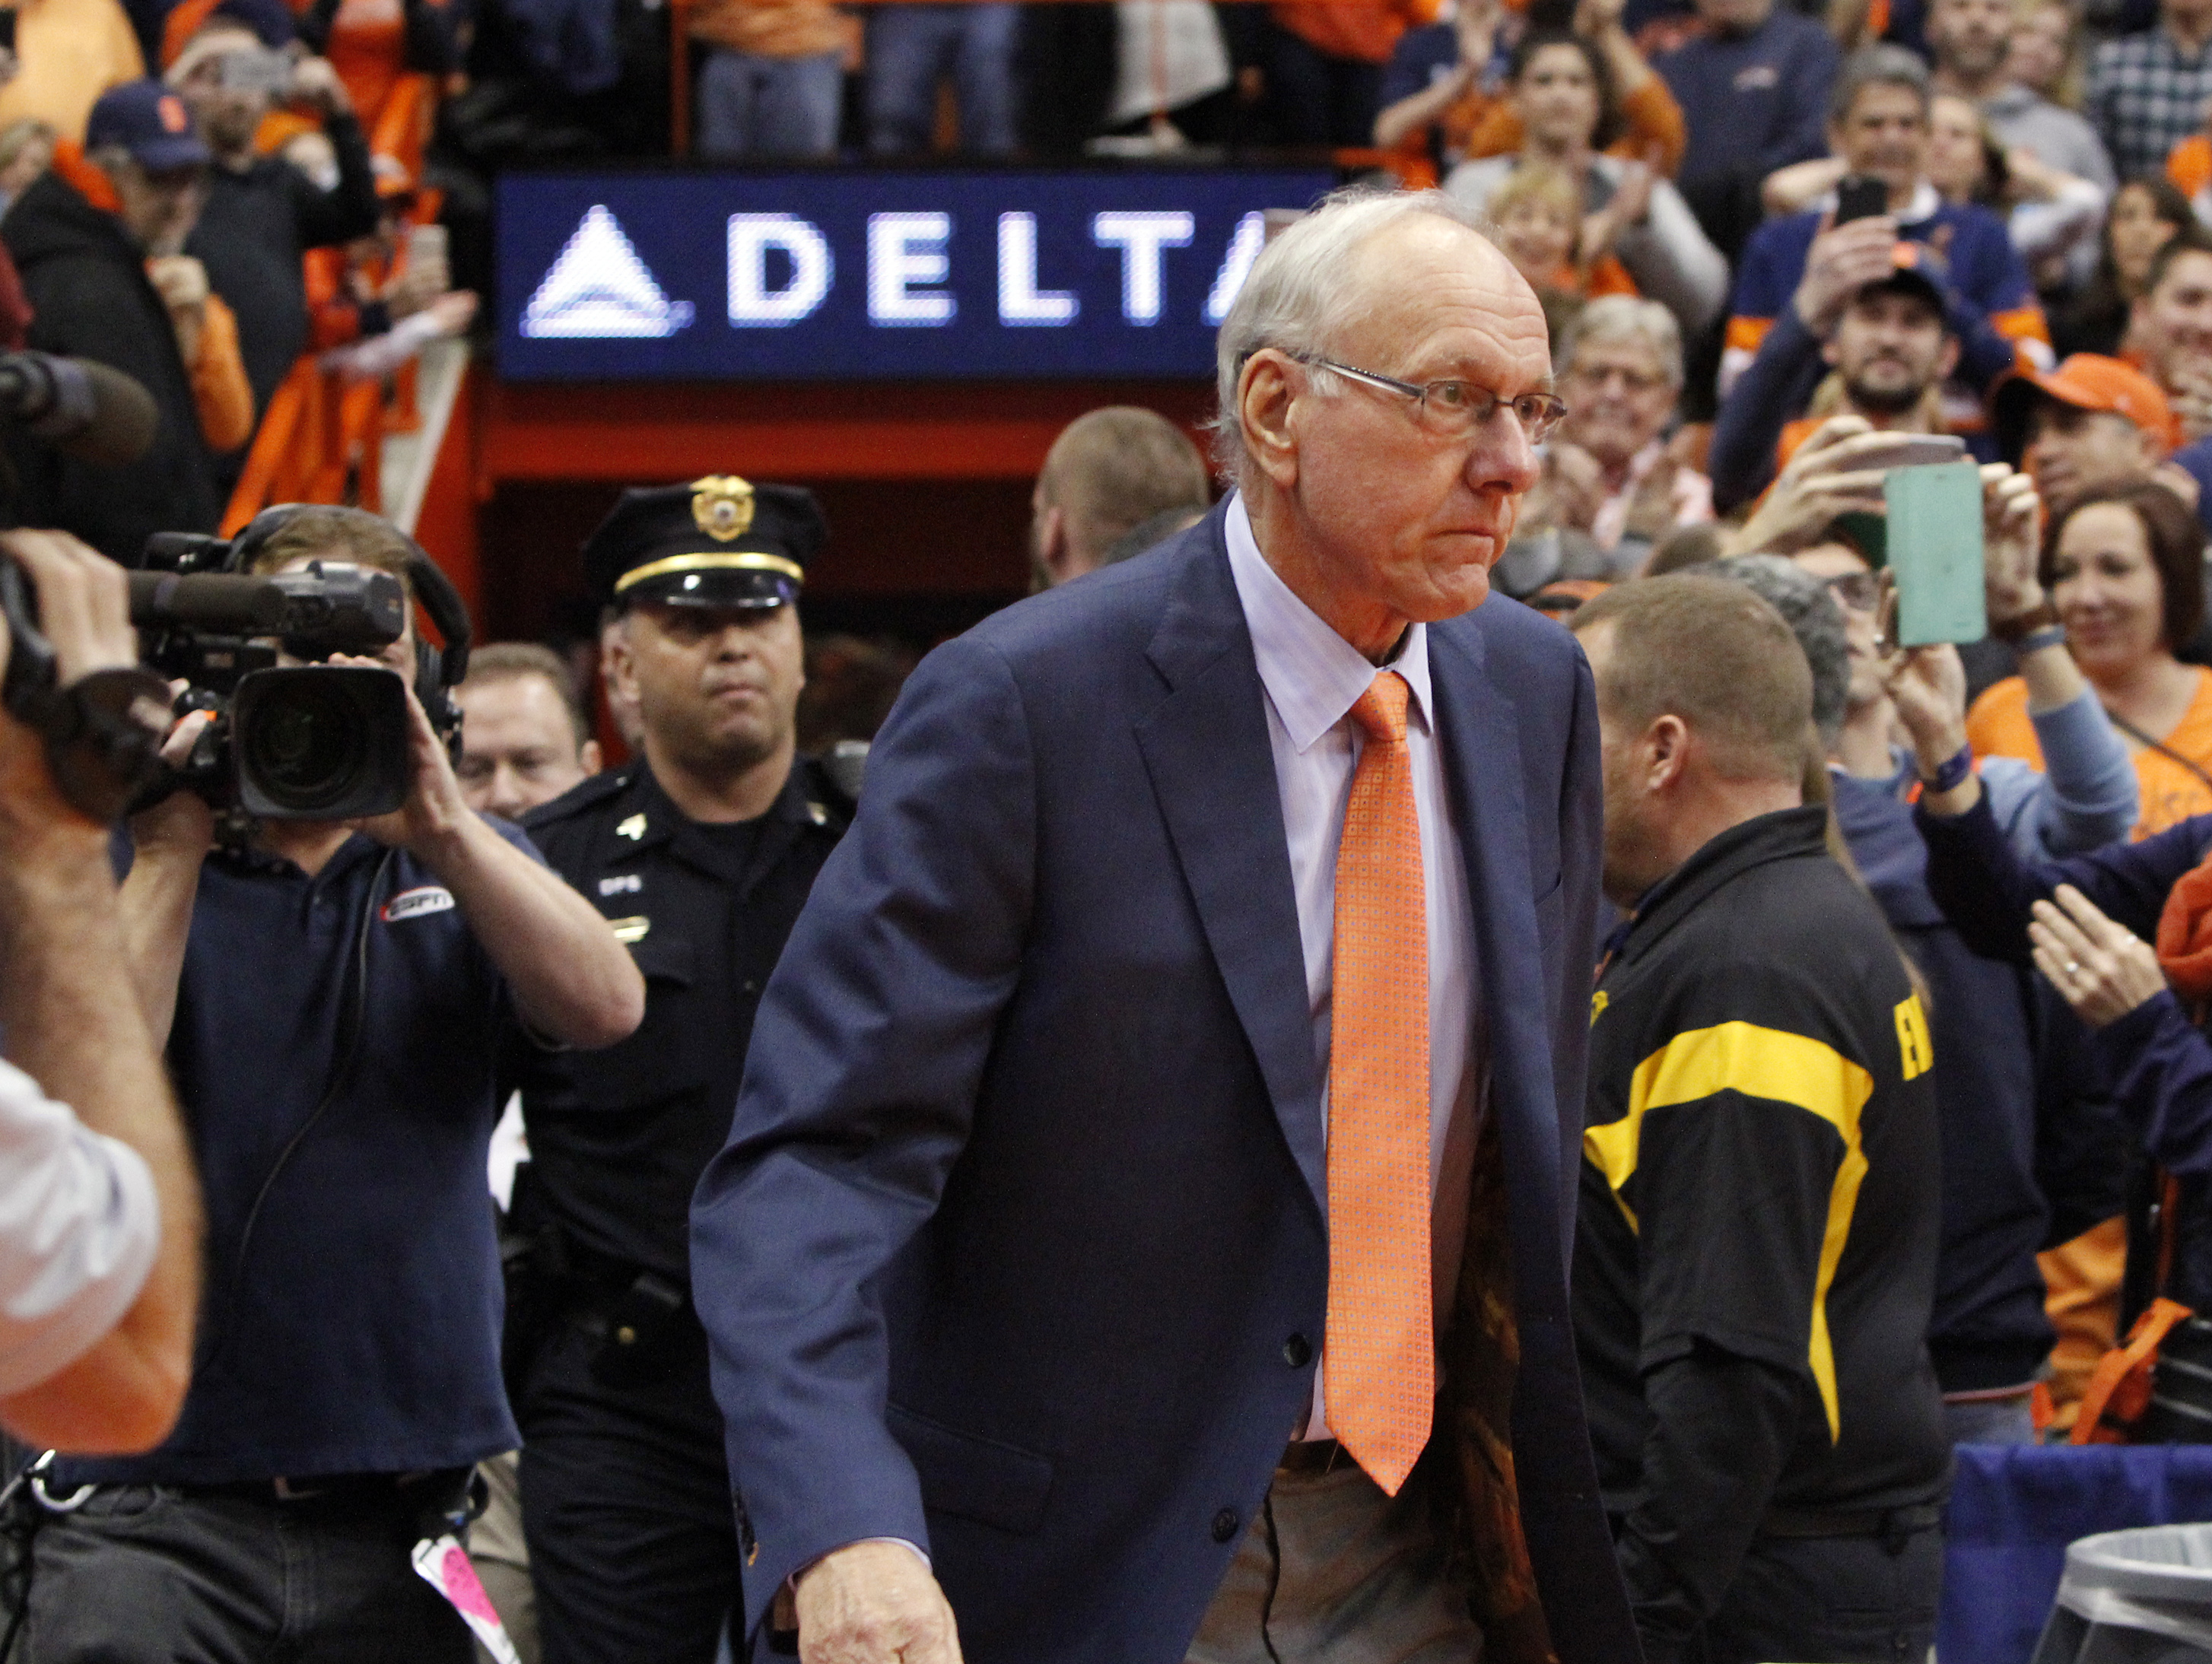 Syracuse head coach Jim Boeheim walks onto the court before an NCAA college basketball game against North Carolina in Syracuse, N.Y., Saturday, Jan. 9, 2016. (AP Photo/Nick Lisi)